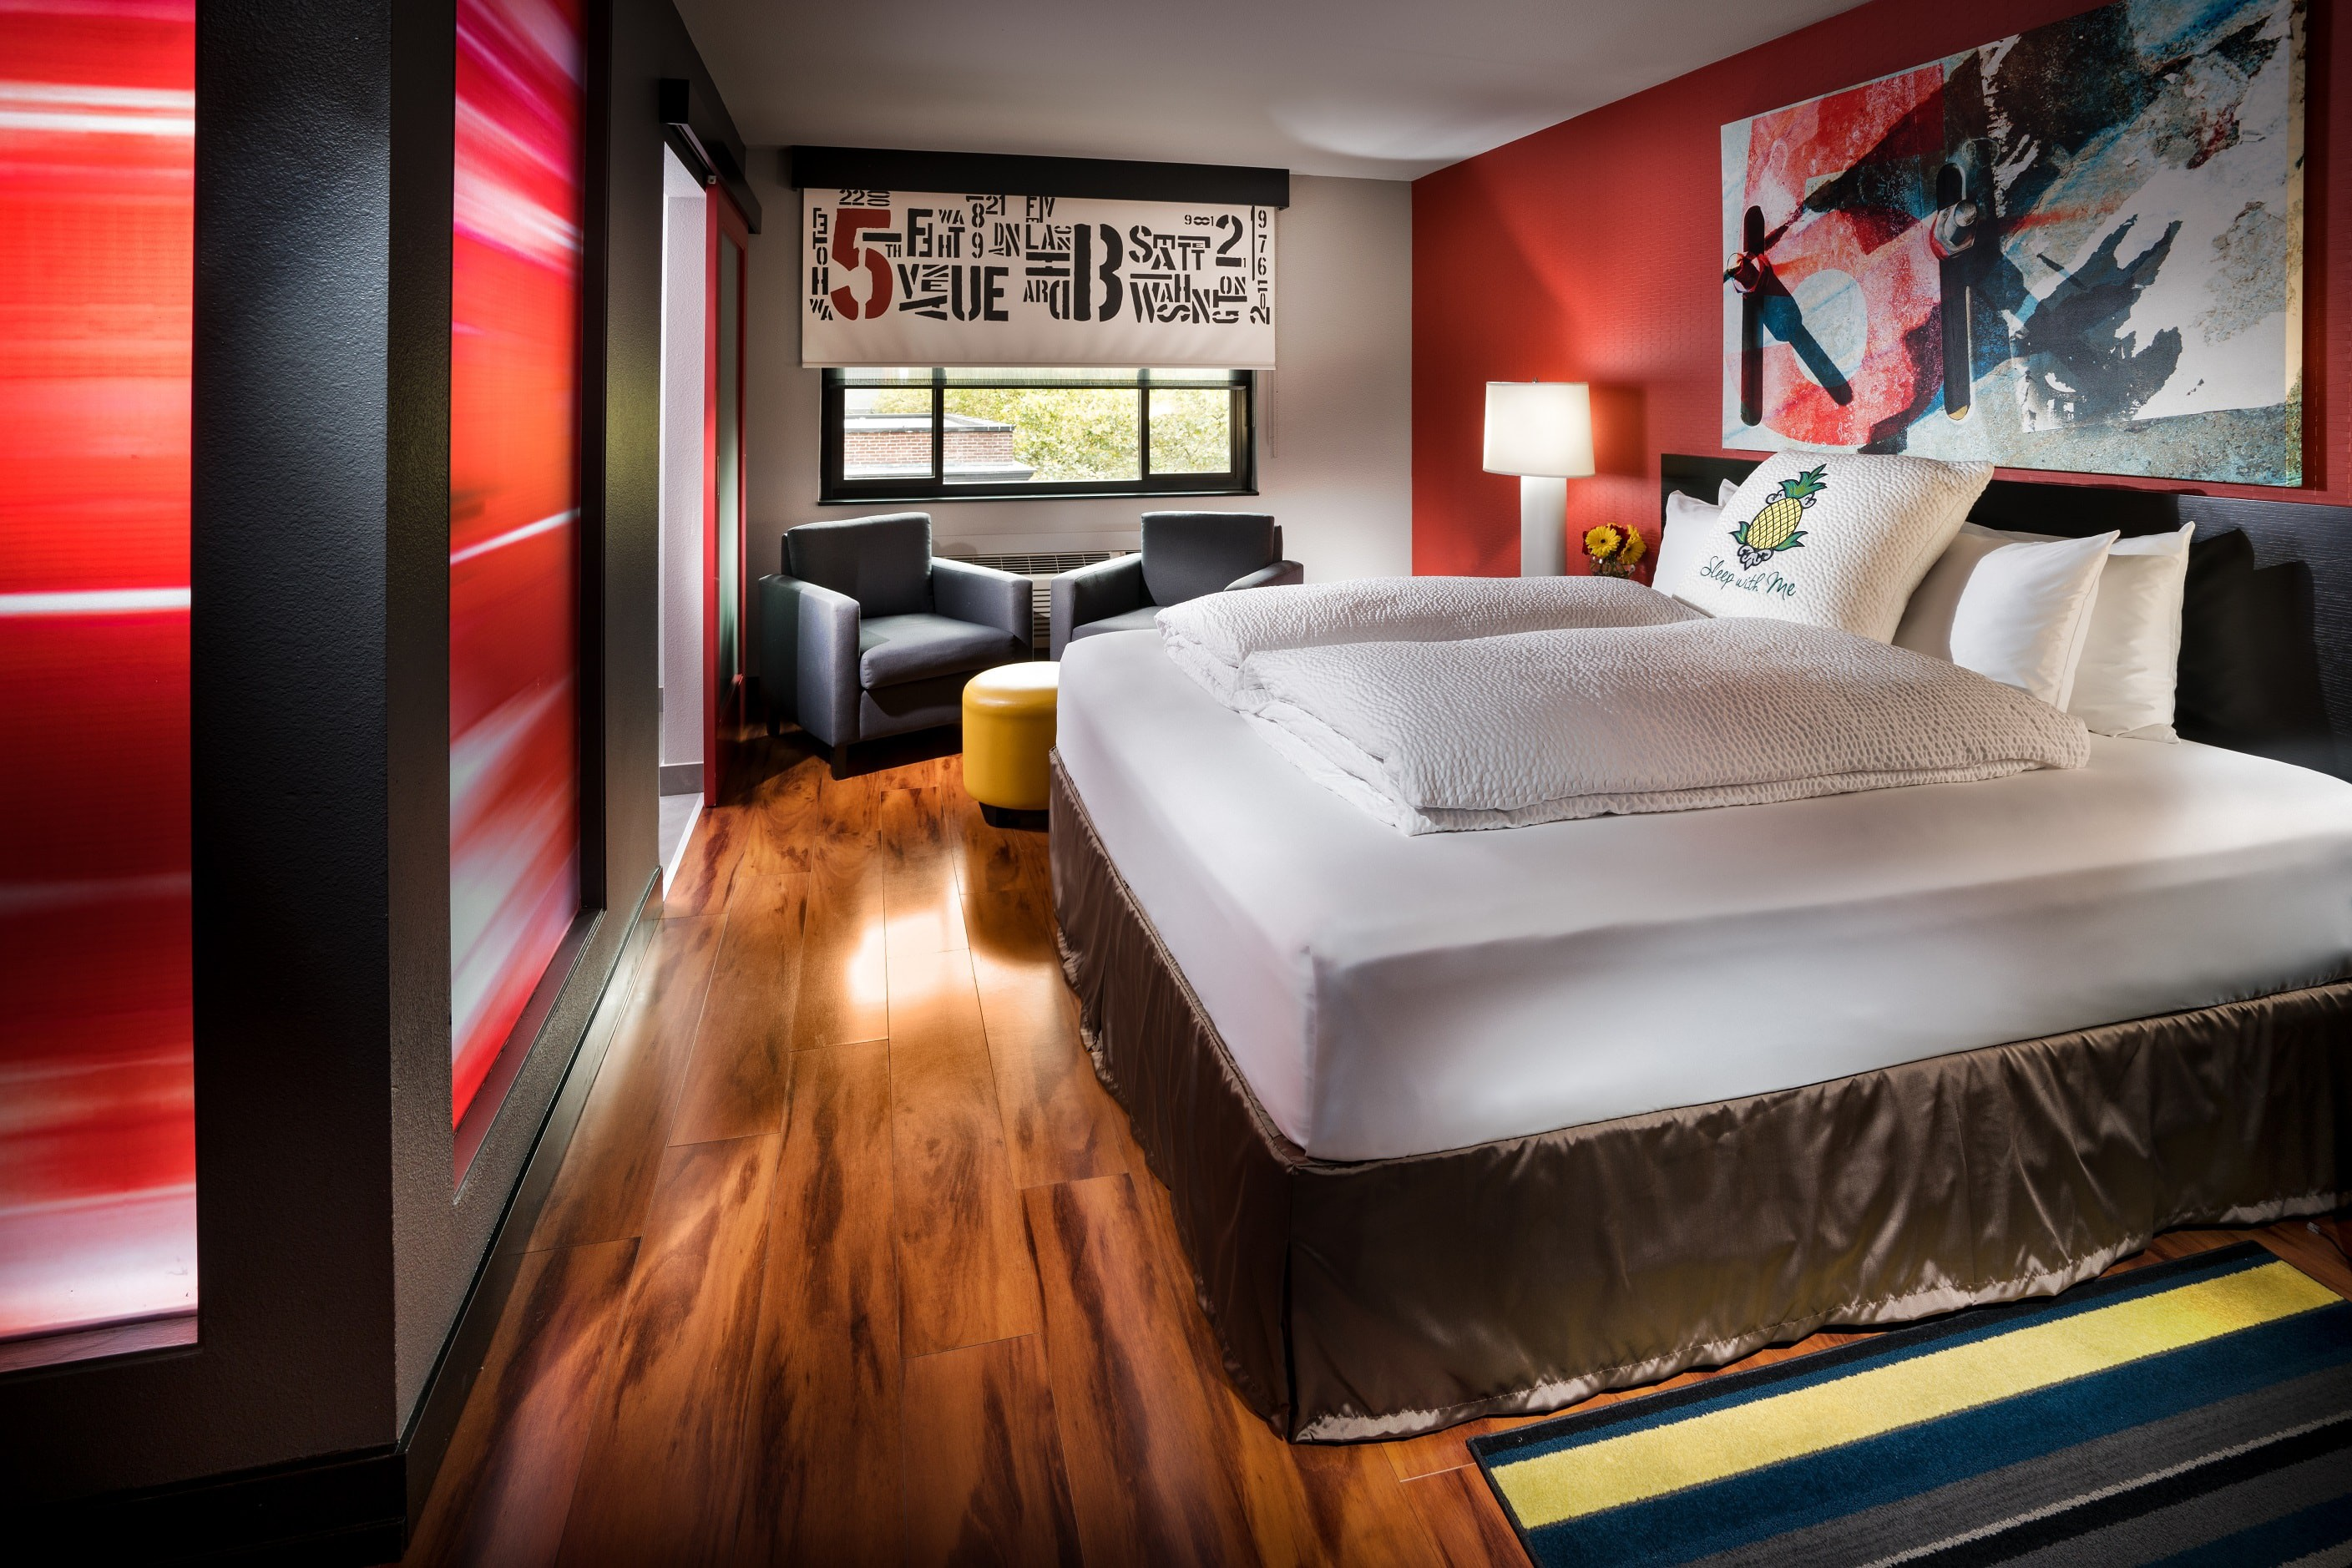 Courtesy of Hotel Five – A Staypineapple Hotel / Expedia